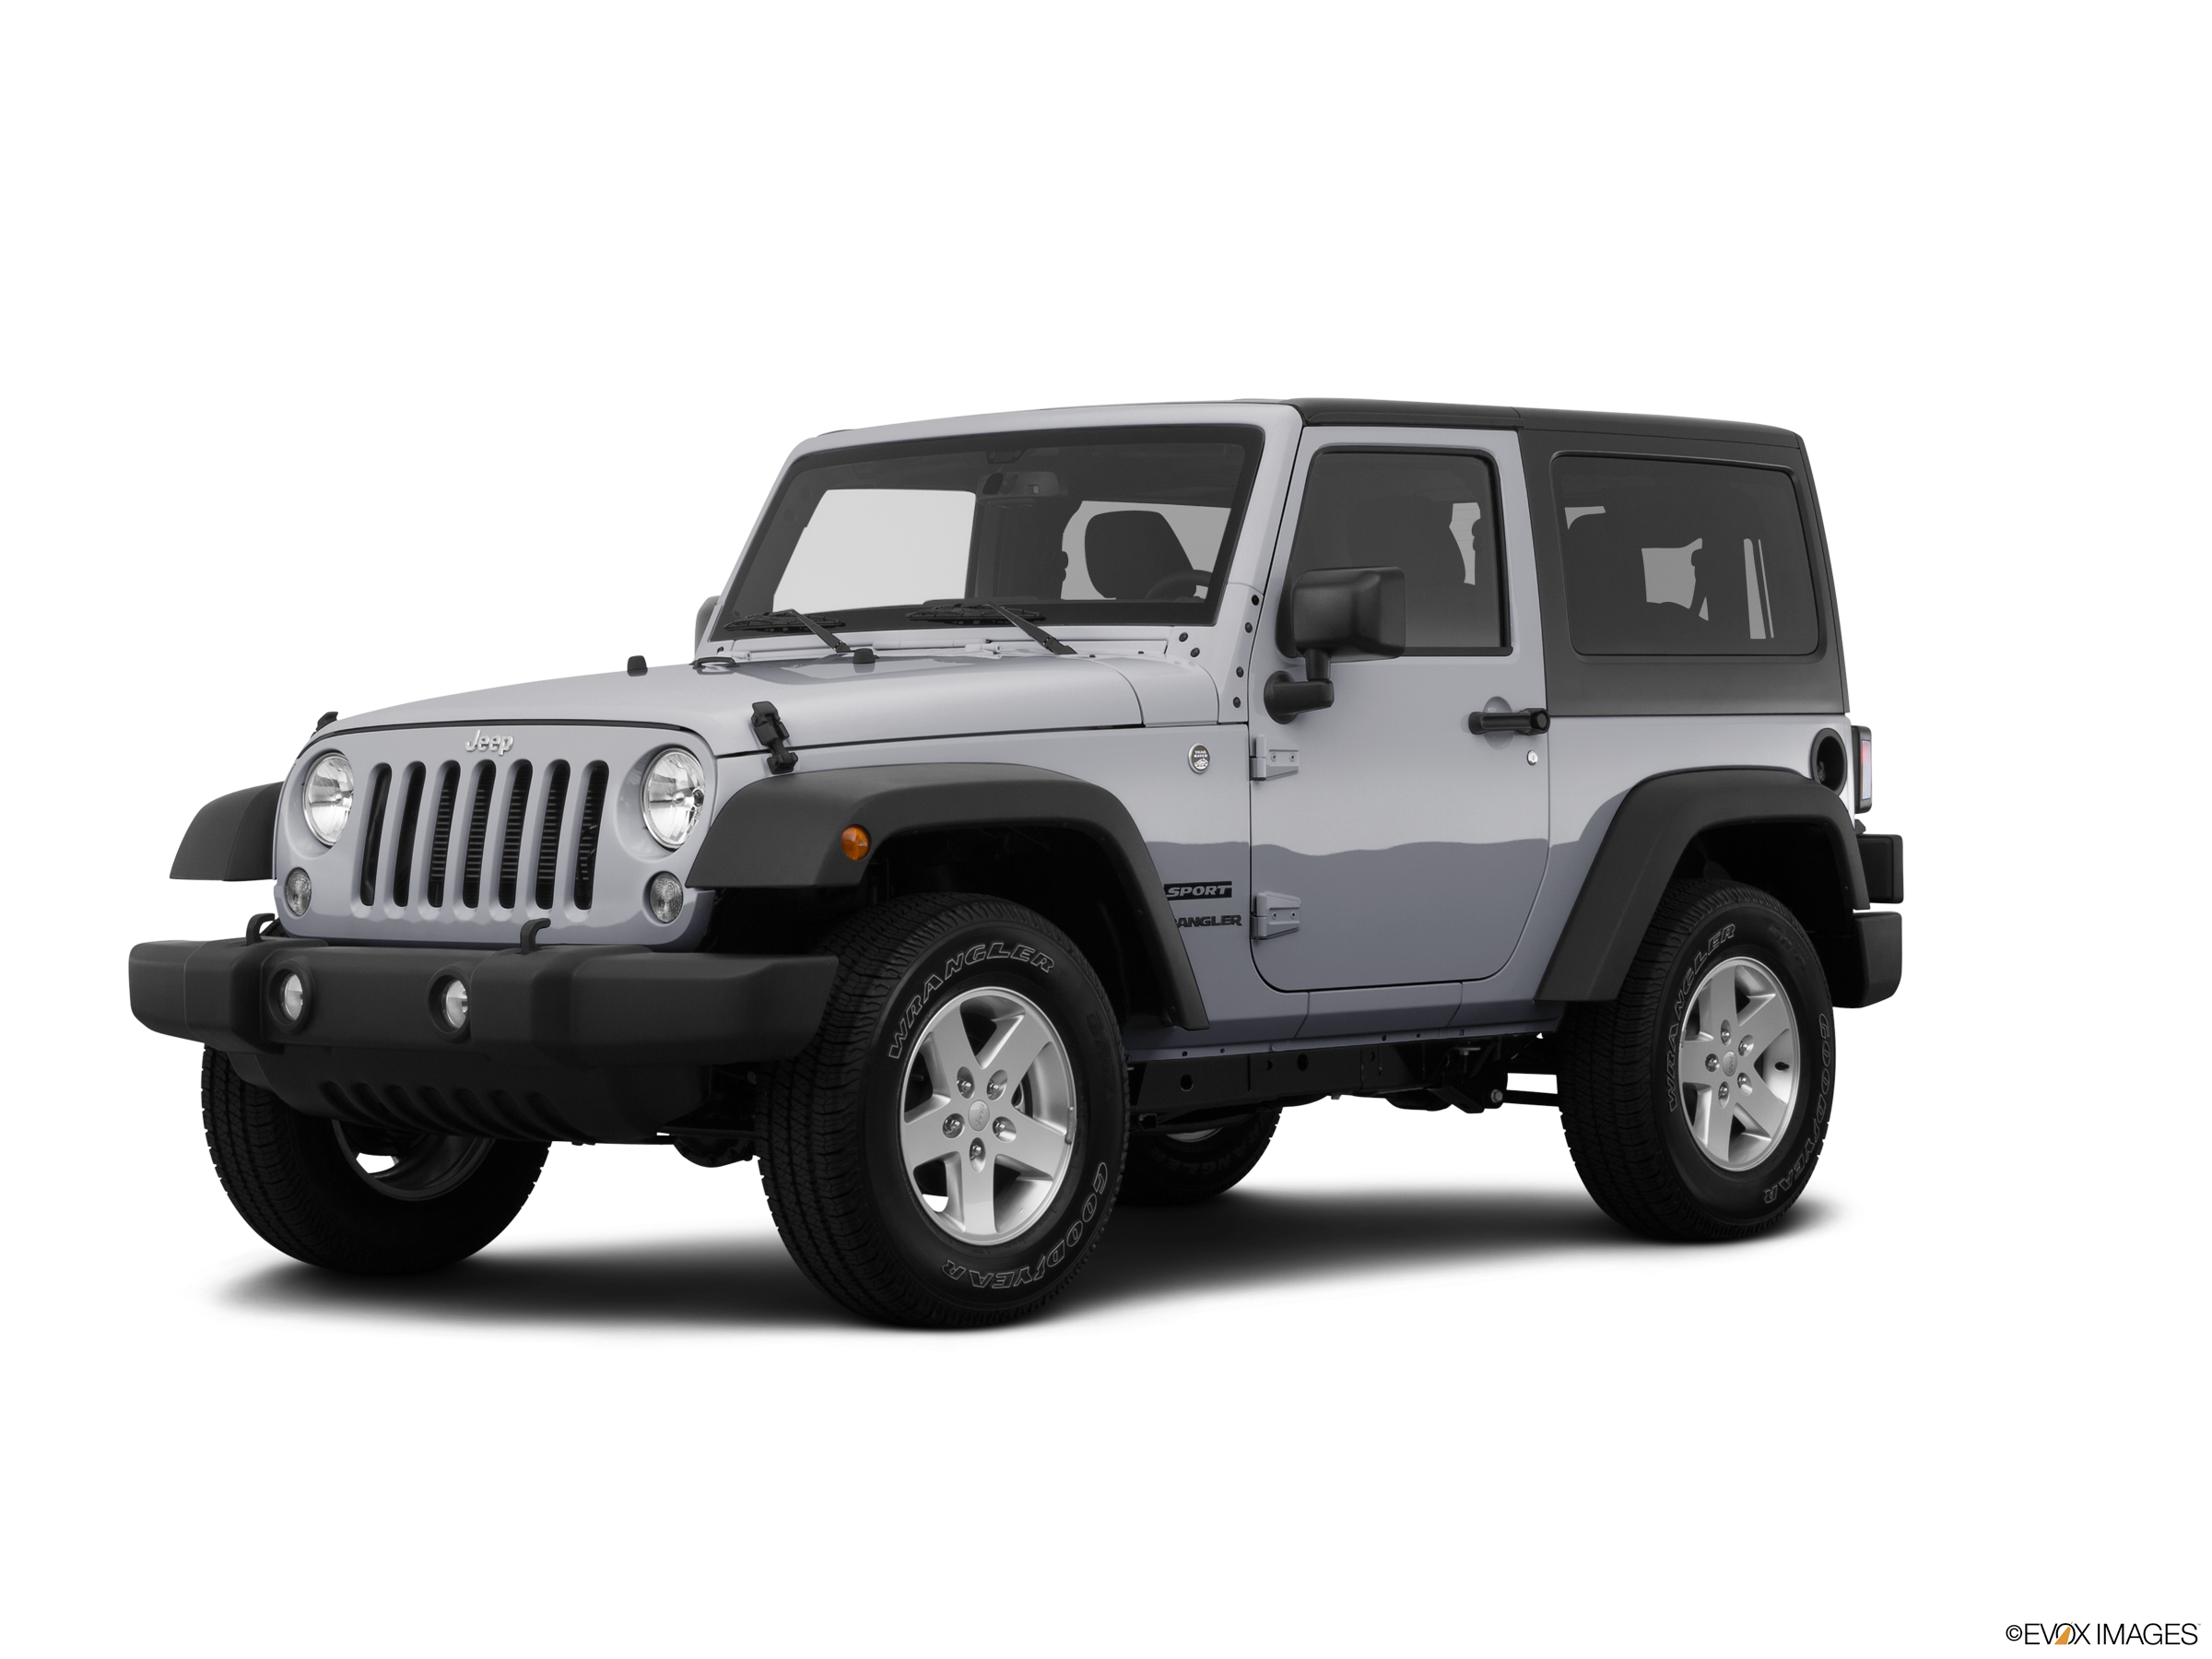 Used Car Pricing For The 2016 Jeep Wrangler Sport Suv 2d Get Msrp Fair Purchase Price Resale Value And Available Sport Suv Used Jeep Wrangler Jeep Wrangler